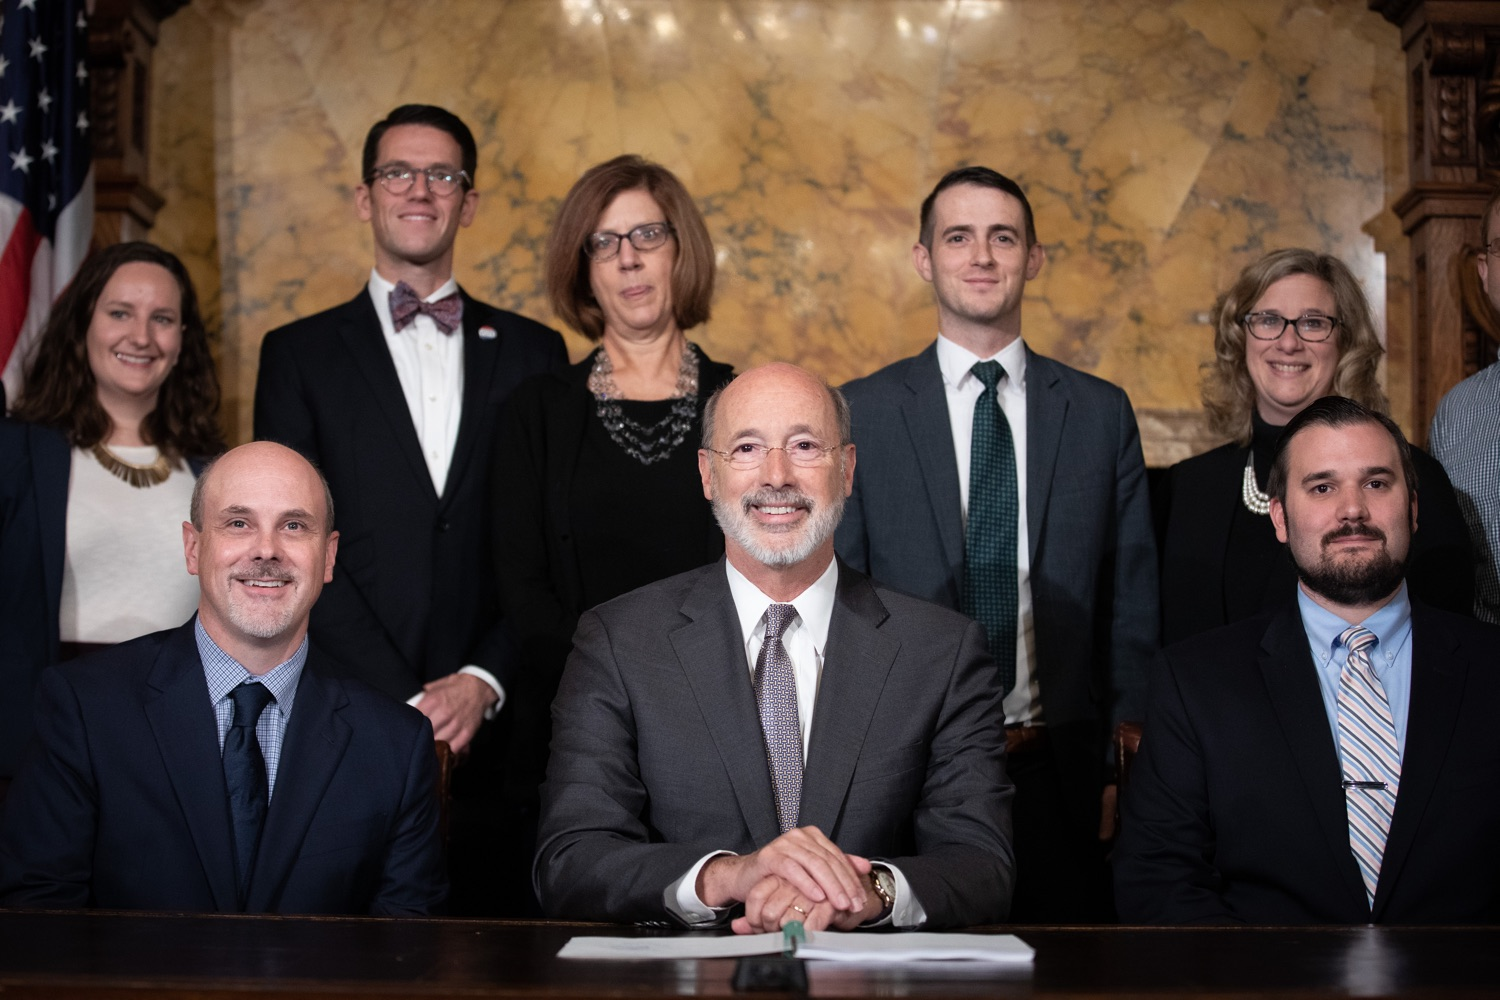 "<a href=""http://filesource.abacast.com/commonwealthofpa/photo/17554_gov_voter_reform_bill_dz_020.jpg"" target=""_blank"">⇣ Download Photo<br></a>Harrisburg, PA  Governor Tom Wolf posing with attendees after the bill signing. Governor Wolf made voting more convenient and secure by signing Act 77 of 2019, the most significant improvement to Pennsylvanias elections in more than 80 years. The bipartisan compromise legislation takes effect for the April 2020 primary election and makes Pennsylvania a national leader with voter-friendly election reforms."